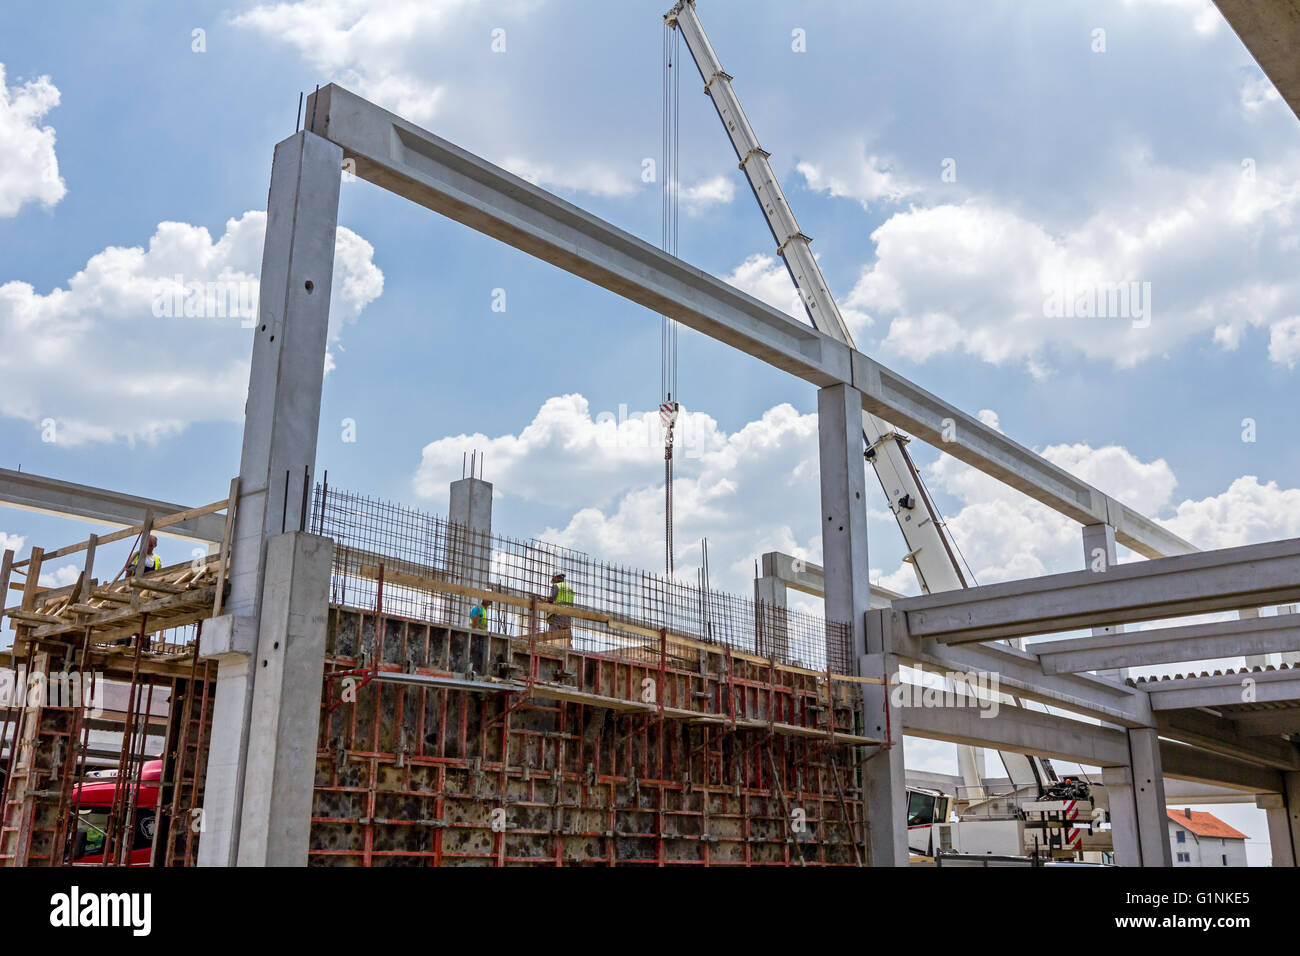 View on building site until workers are assembly a huge mold with reinforcement mesh for concreting. Stock Photo